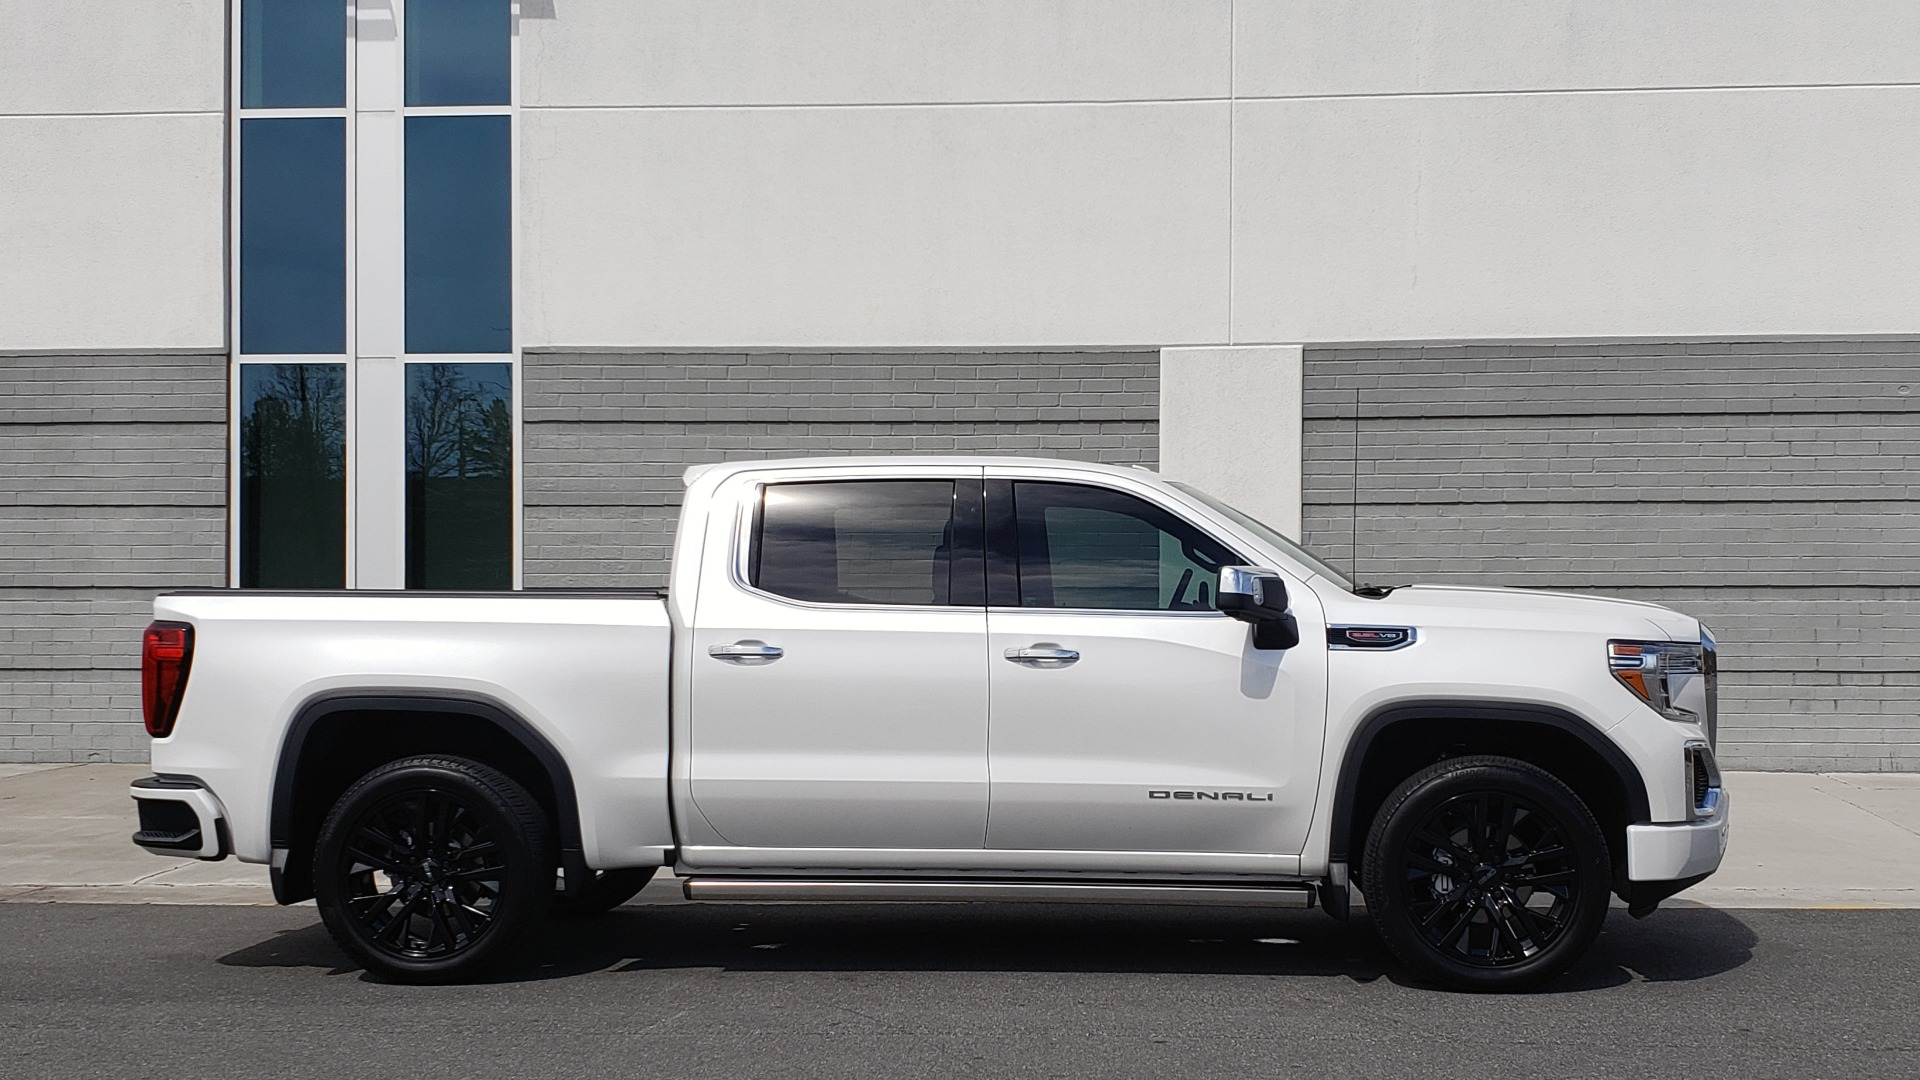 Used 2020 GMC SIERRA 1500 DENALI 4X4 CREWCAB 6.2L V8 / TECH / NAV / SUNROOF / DRVR ALERT II for sale Sold at Formula Imports in Charlotte NC 28227 7